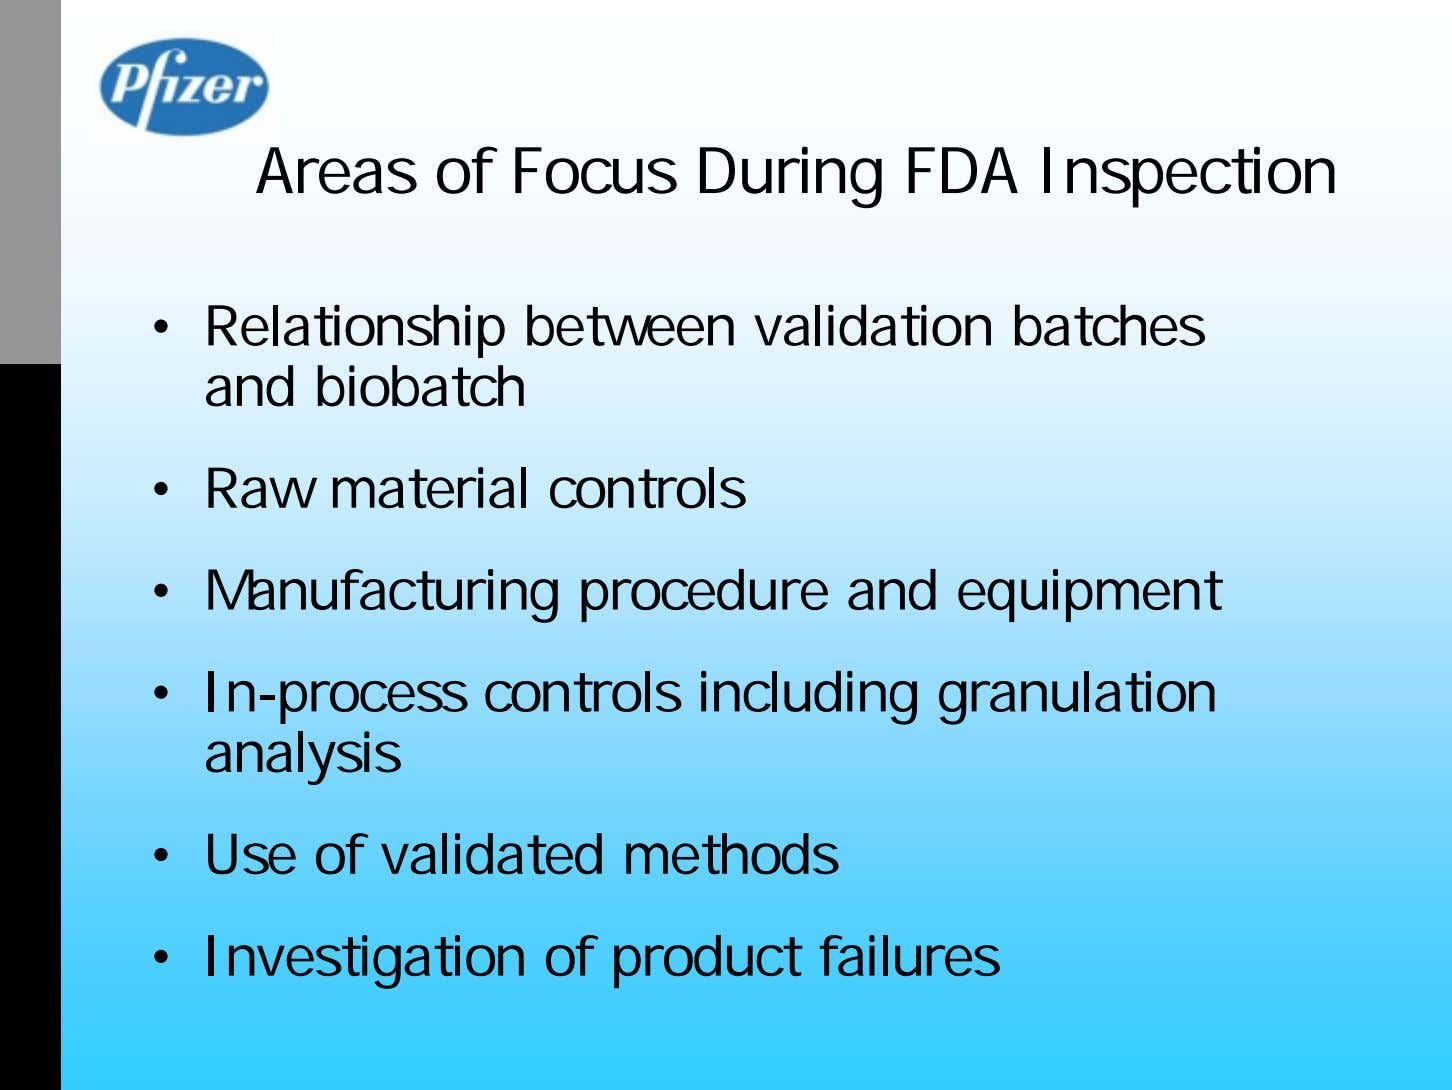 Areas of Focus During FDA Inspection • Relationship between validation batches and biobatch • Raw